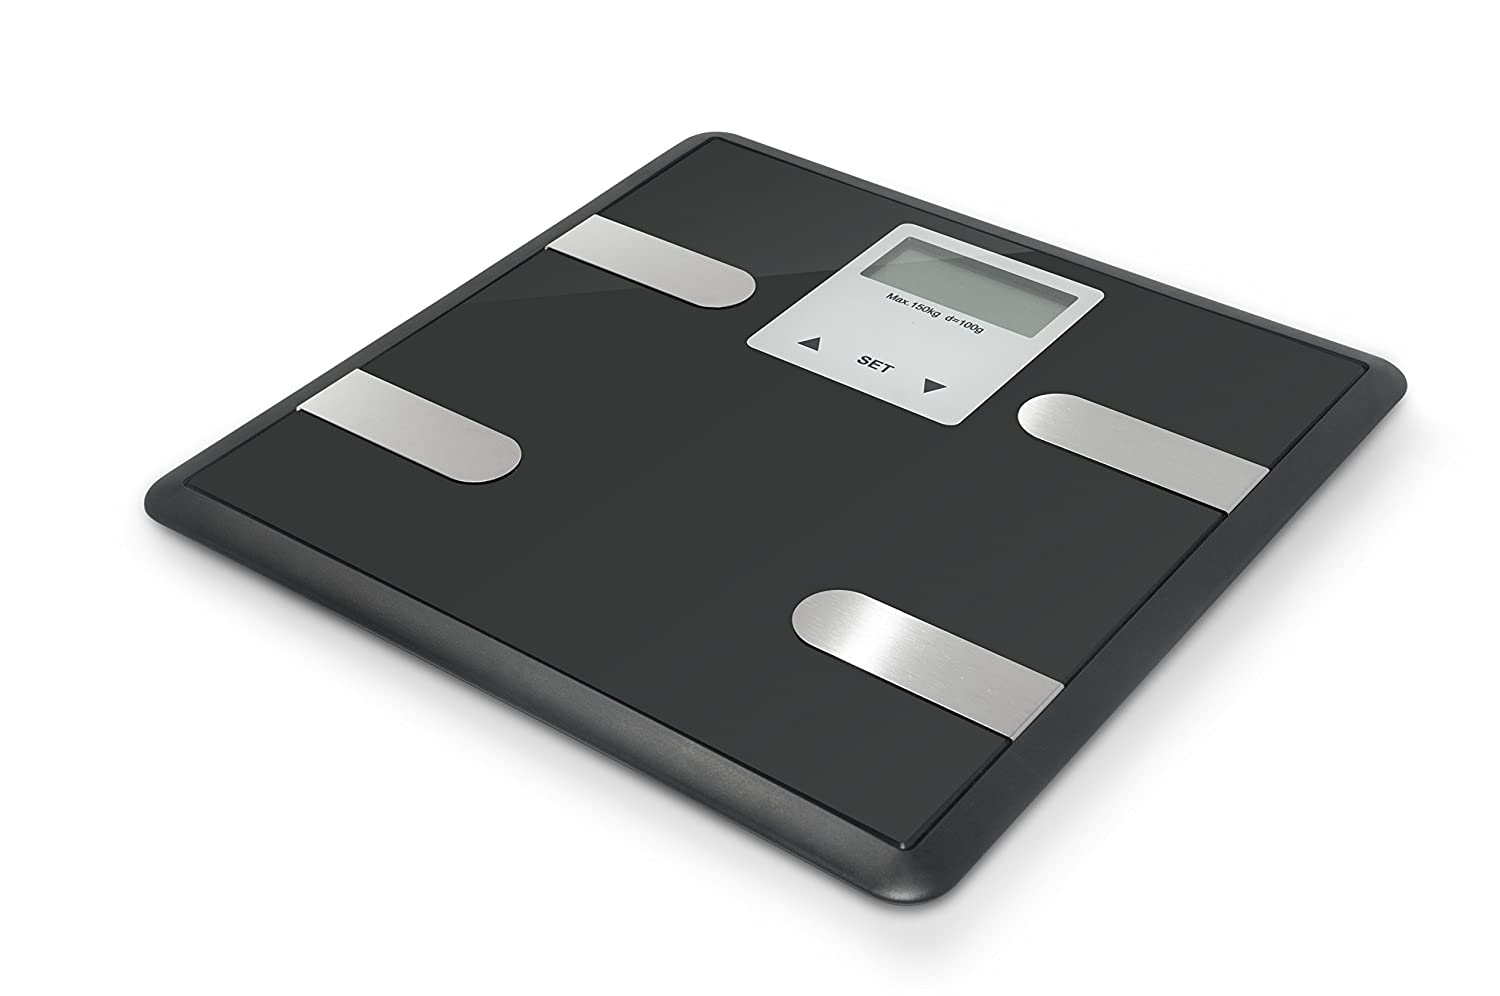 Digital Body Fat Weight Scale by Balance, Accurate Health Metrics, Body Composition & Weight Measurements, Glass Top, with Large Backlit Display (Black) LED EAGLE